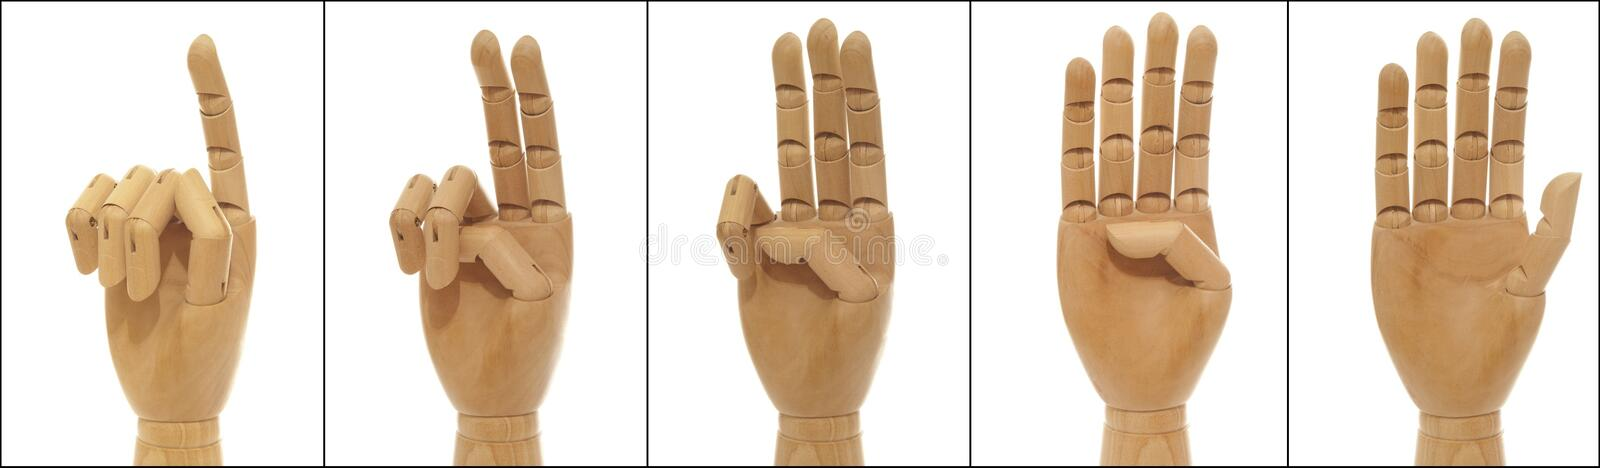 Download Woodenhand Collage: To Count Stock Image - Image: 19967321